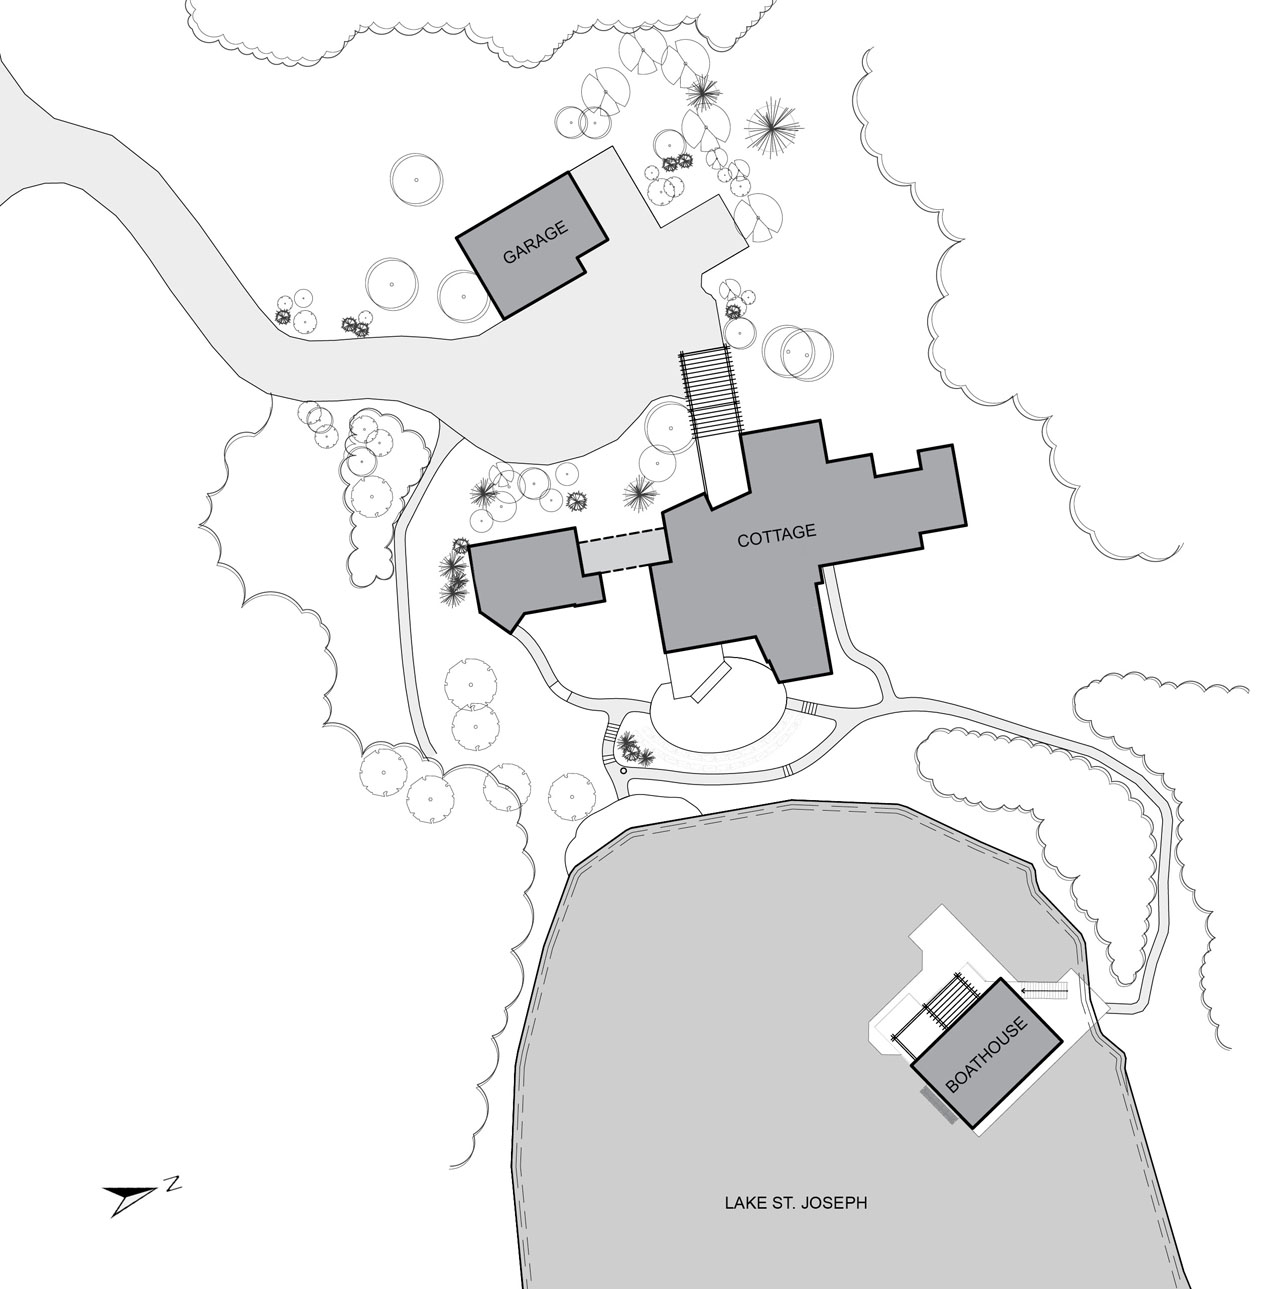 Site Plan, Boathouse Renovation and Extension in Muskoka Lakes, Ontario